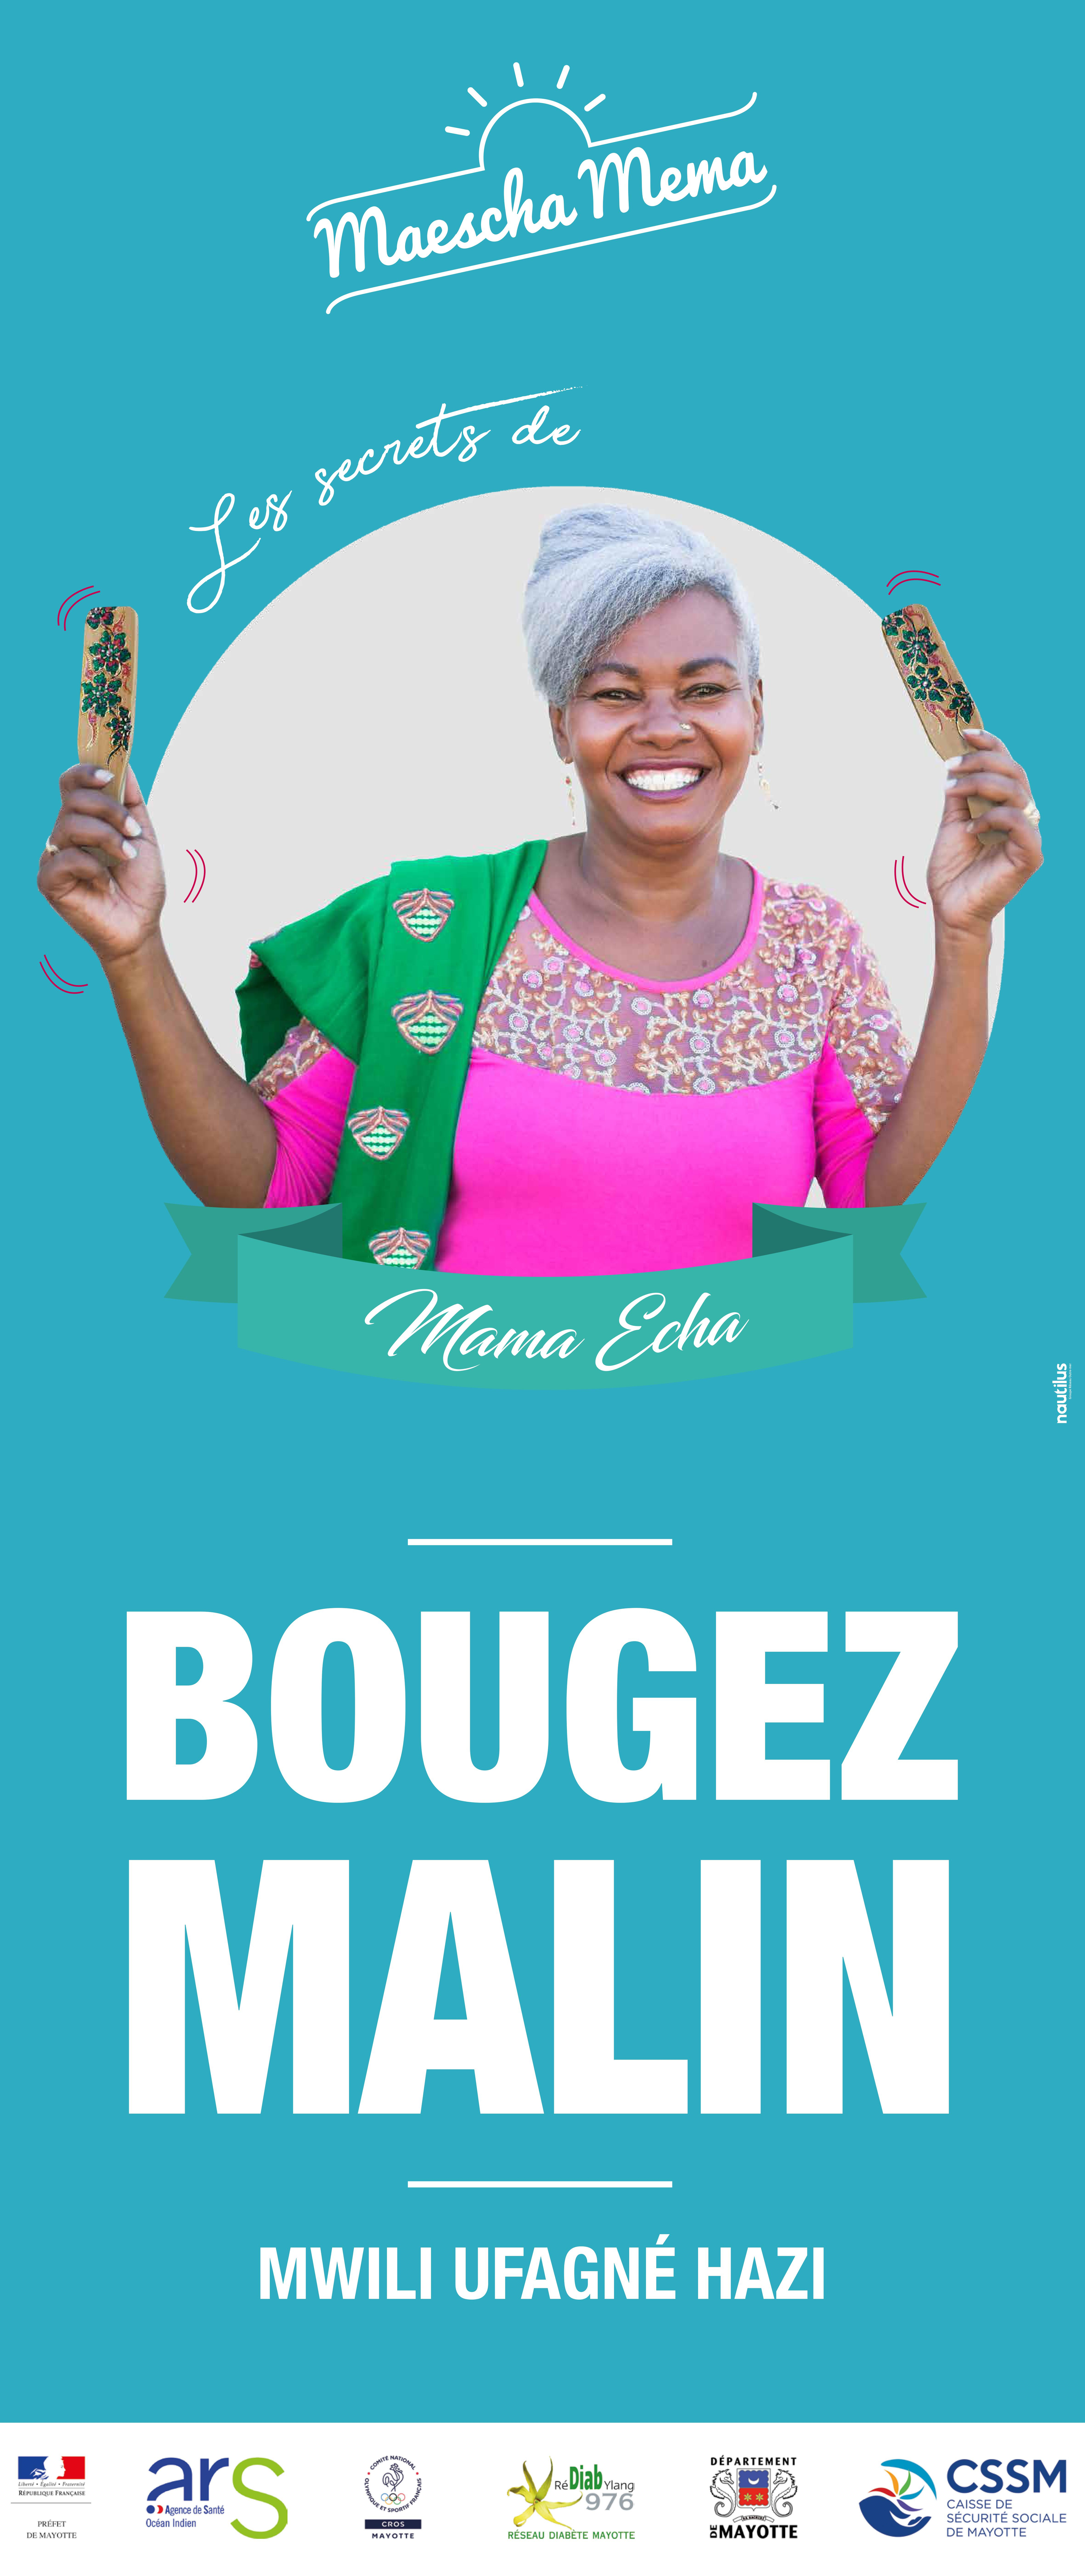 Affiche Bouger malin